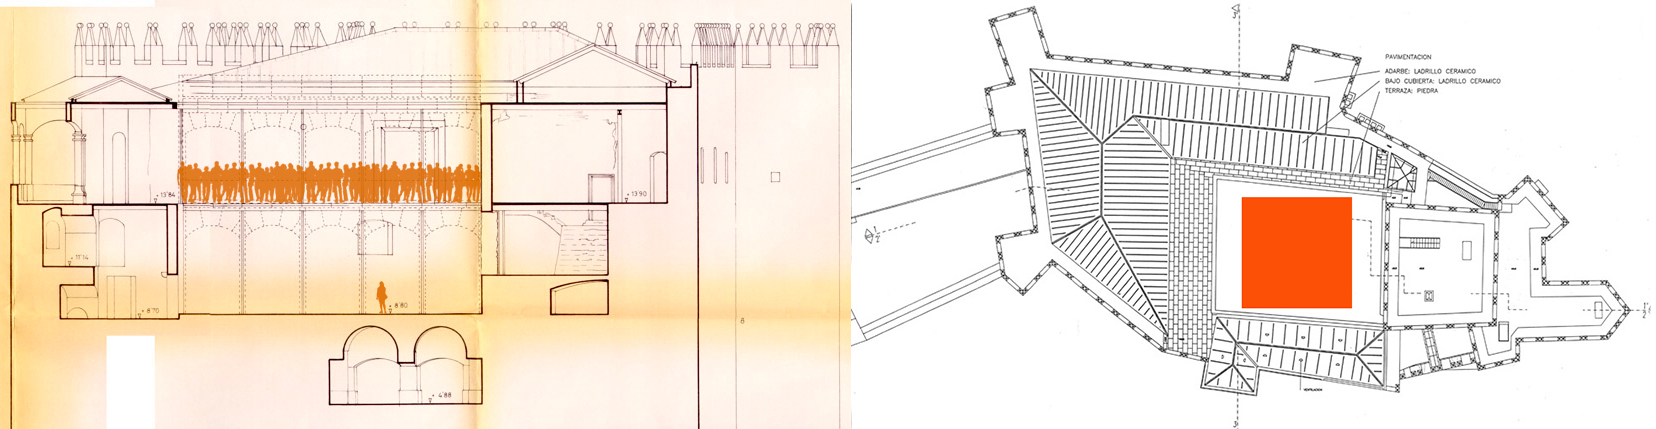 Elevation and plan of the Patio de Honor illustarting the size of the installation.